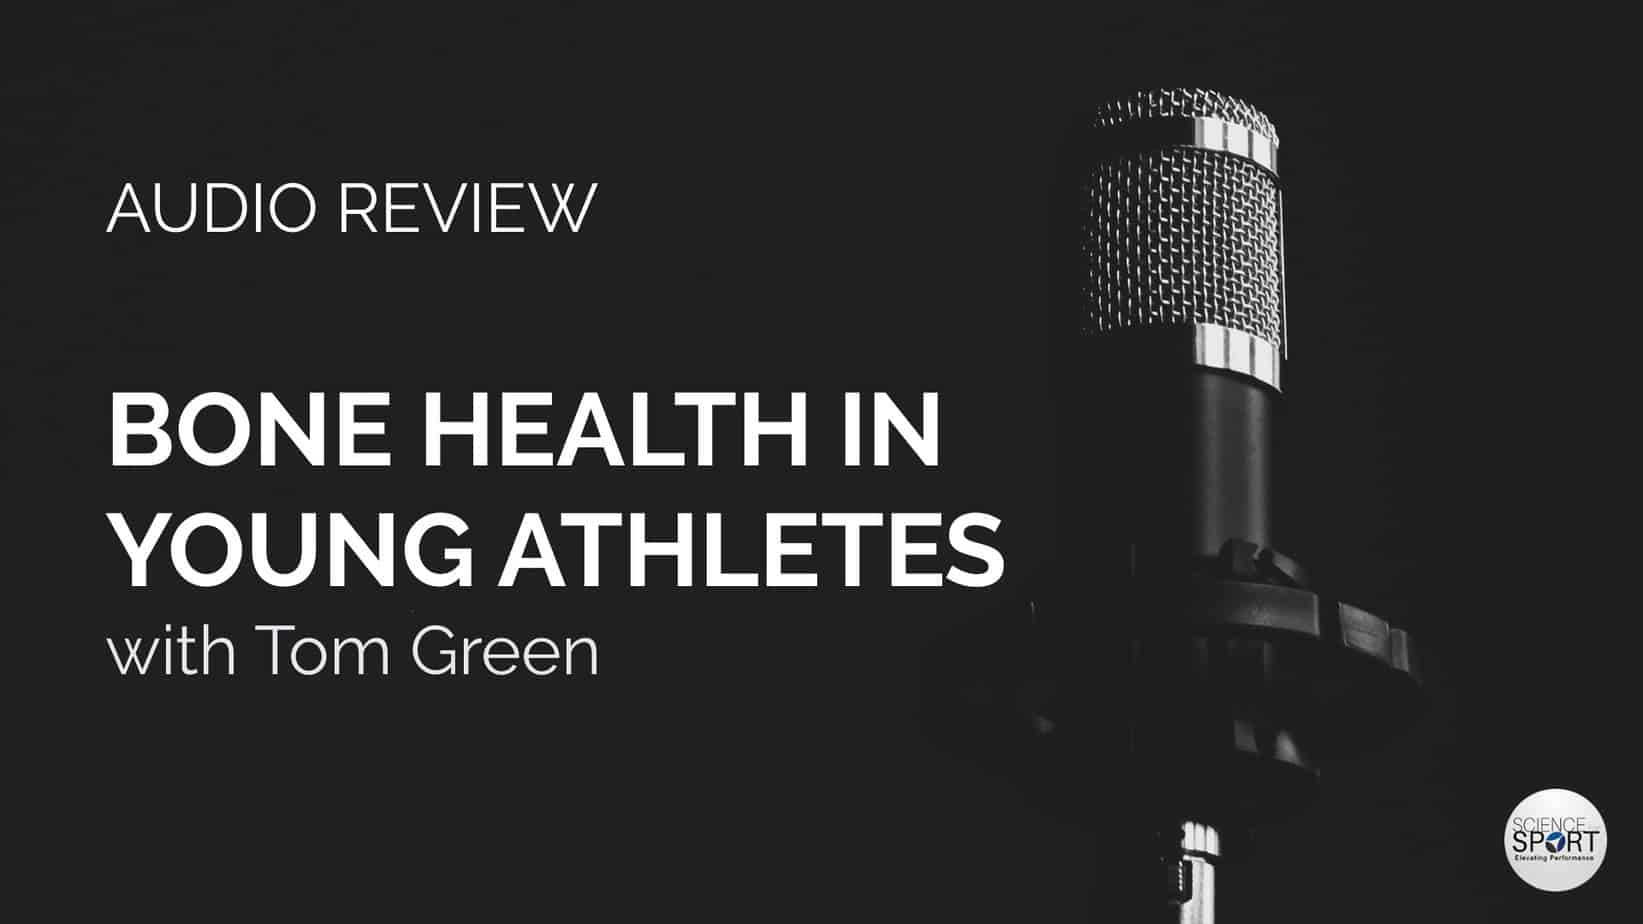 Audio Review - Science for Sport - Bone Health in Young Athletes - Tom Green